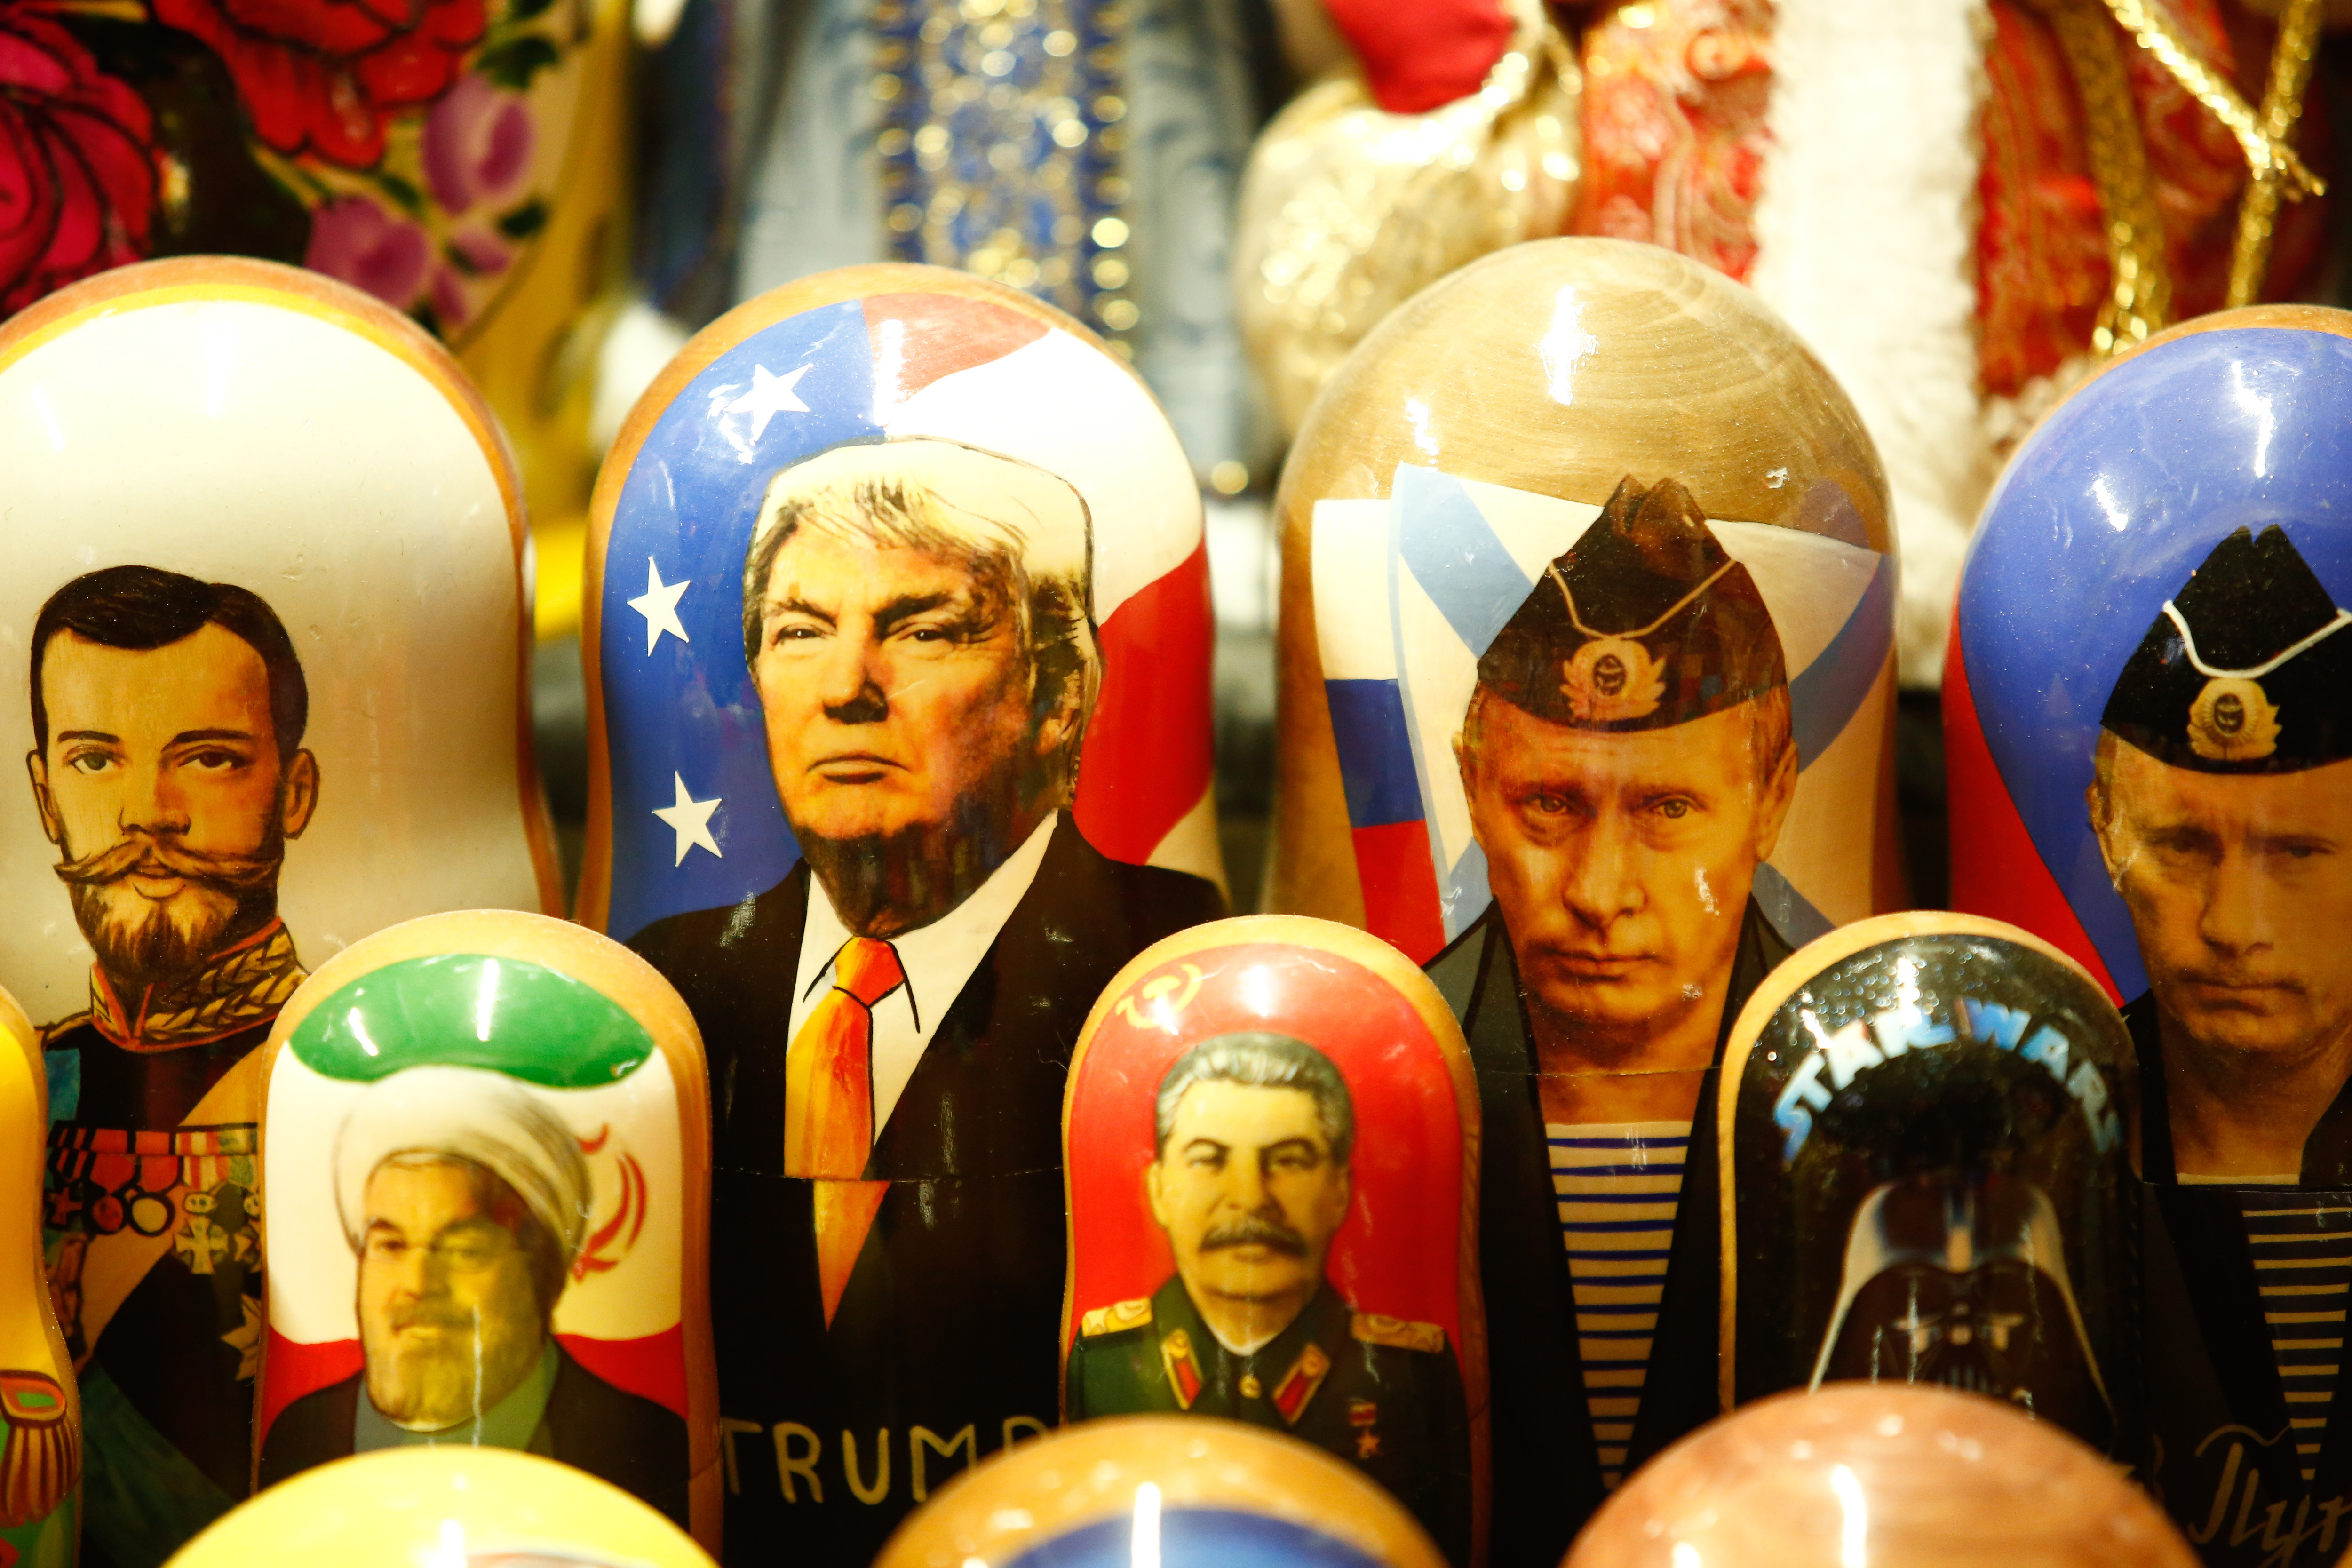 Russian nesting dolls depicting Putin and Trump on sale at a fair in St. Petersburg, Russia, on Dec. 29, 2019.